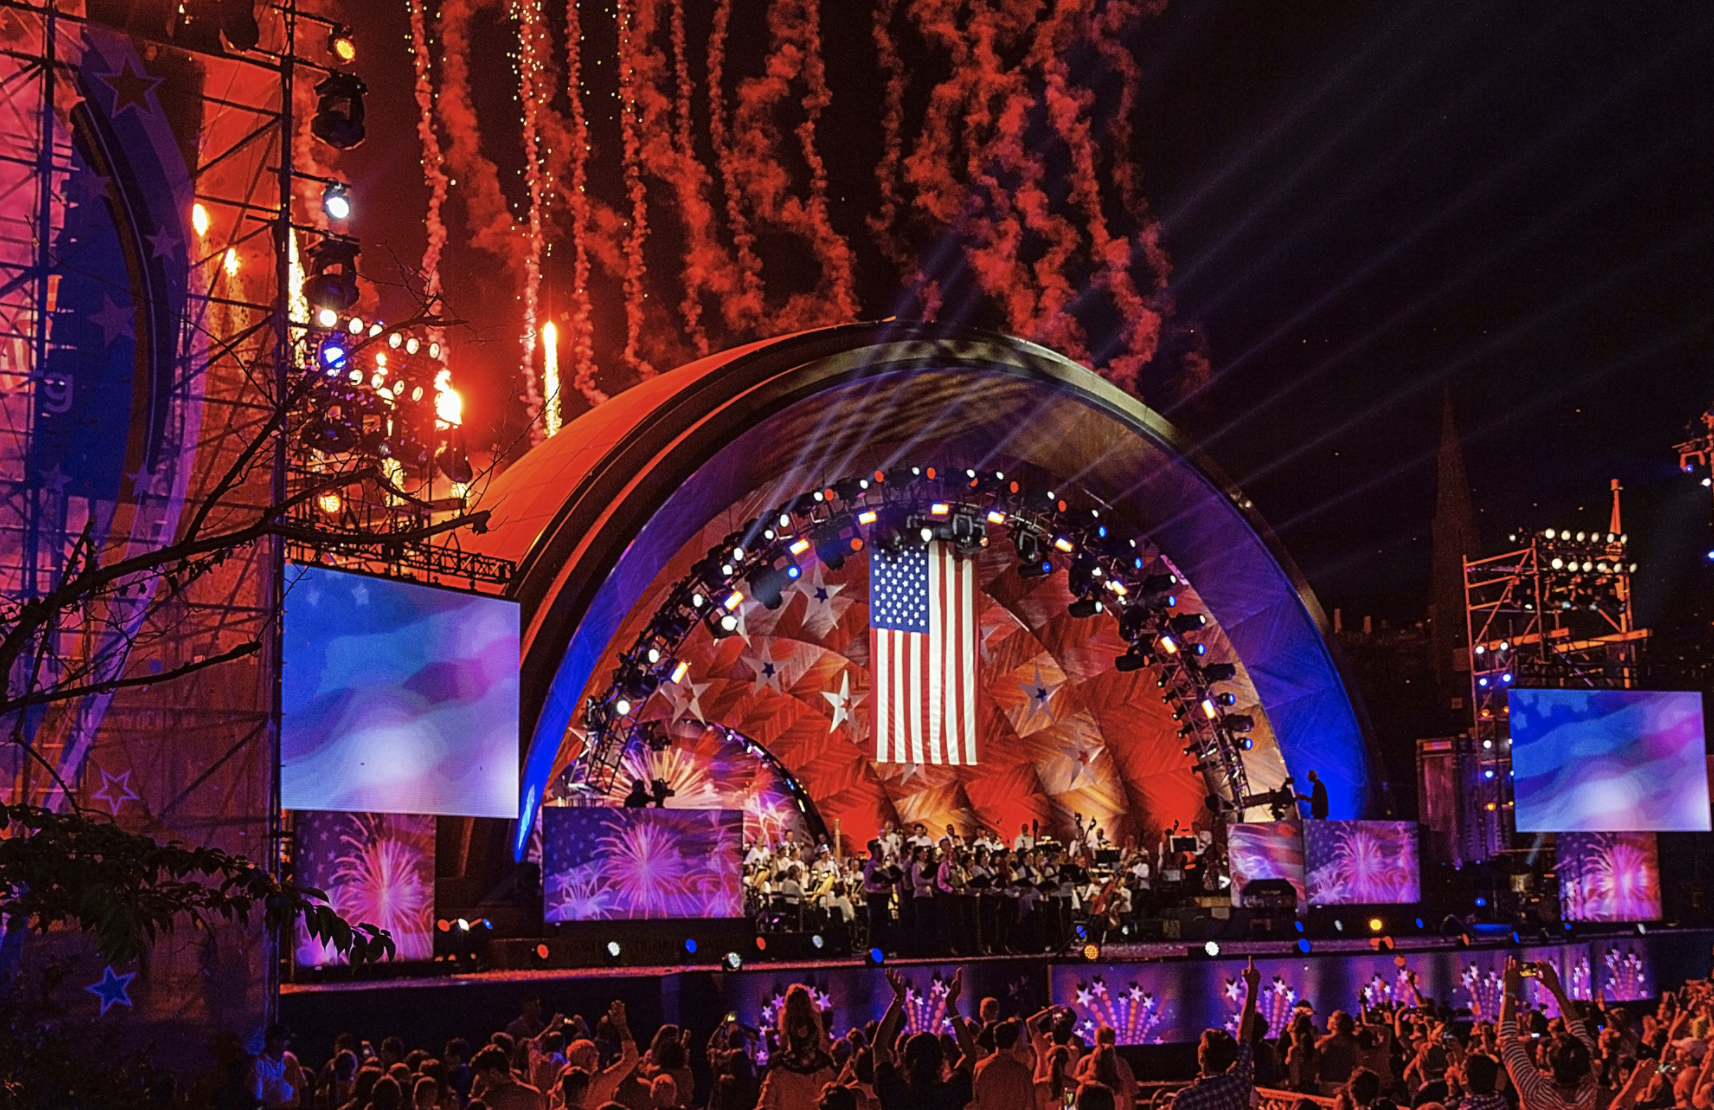 The Boston Pops perform at The Hatch Memorial Shell on July 4, 2018. Photo: Walter Mulligan Photography